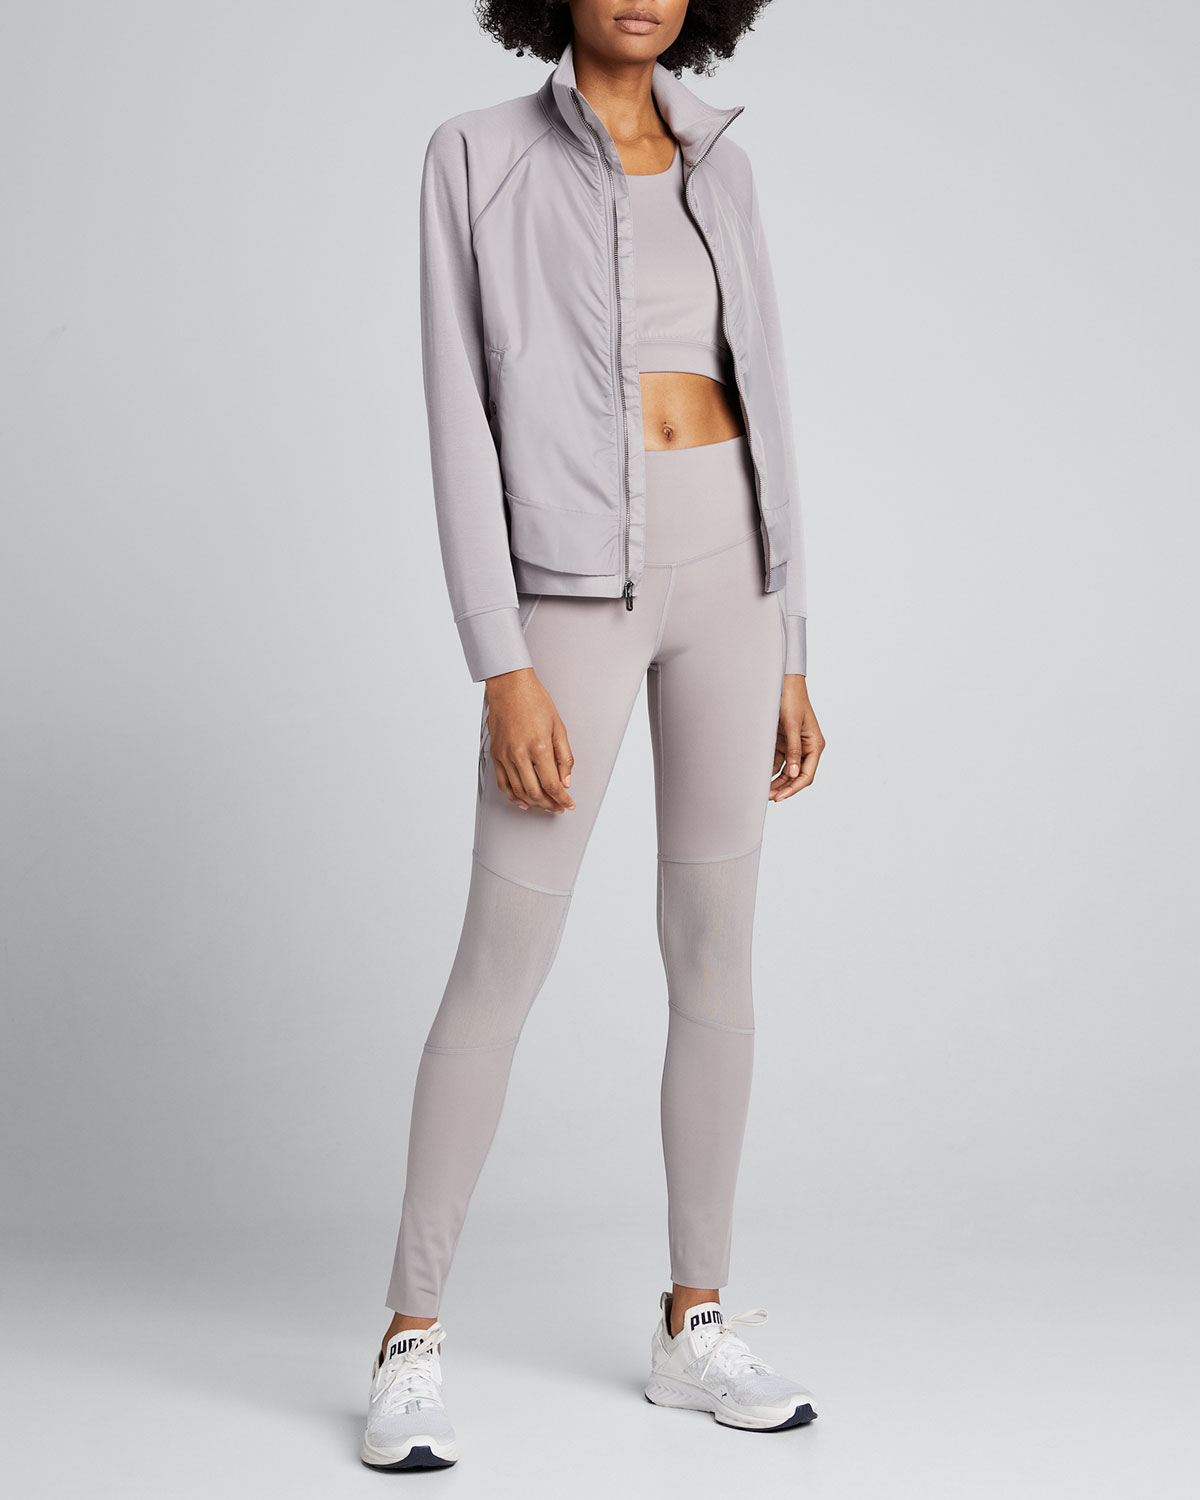 Under Armour Pants X MISTY COPELAND HIGH-RISE LEGGINGS W/ POCKETS